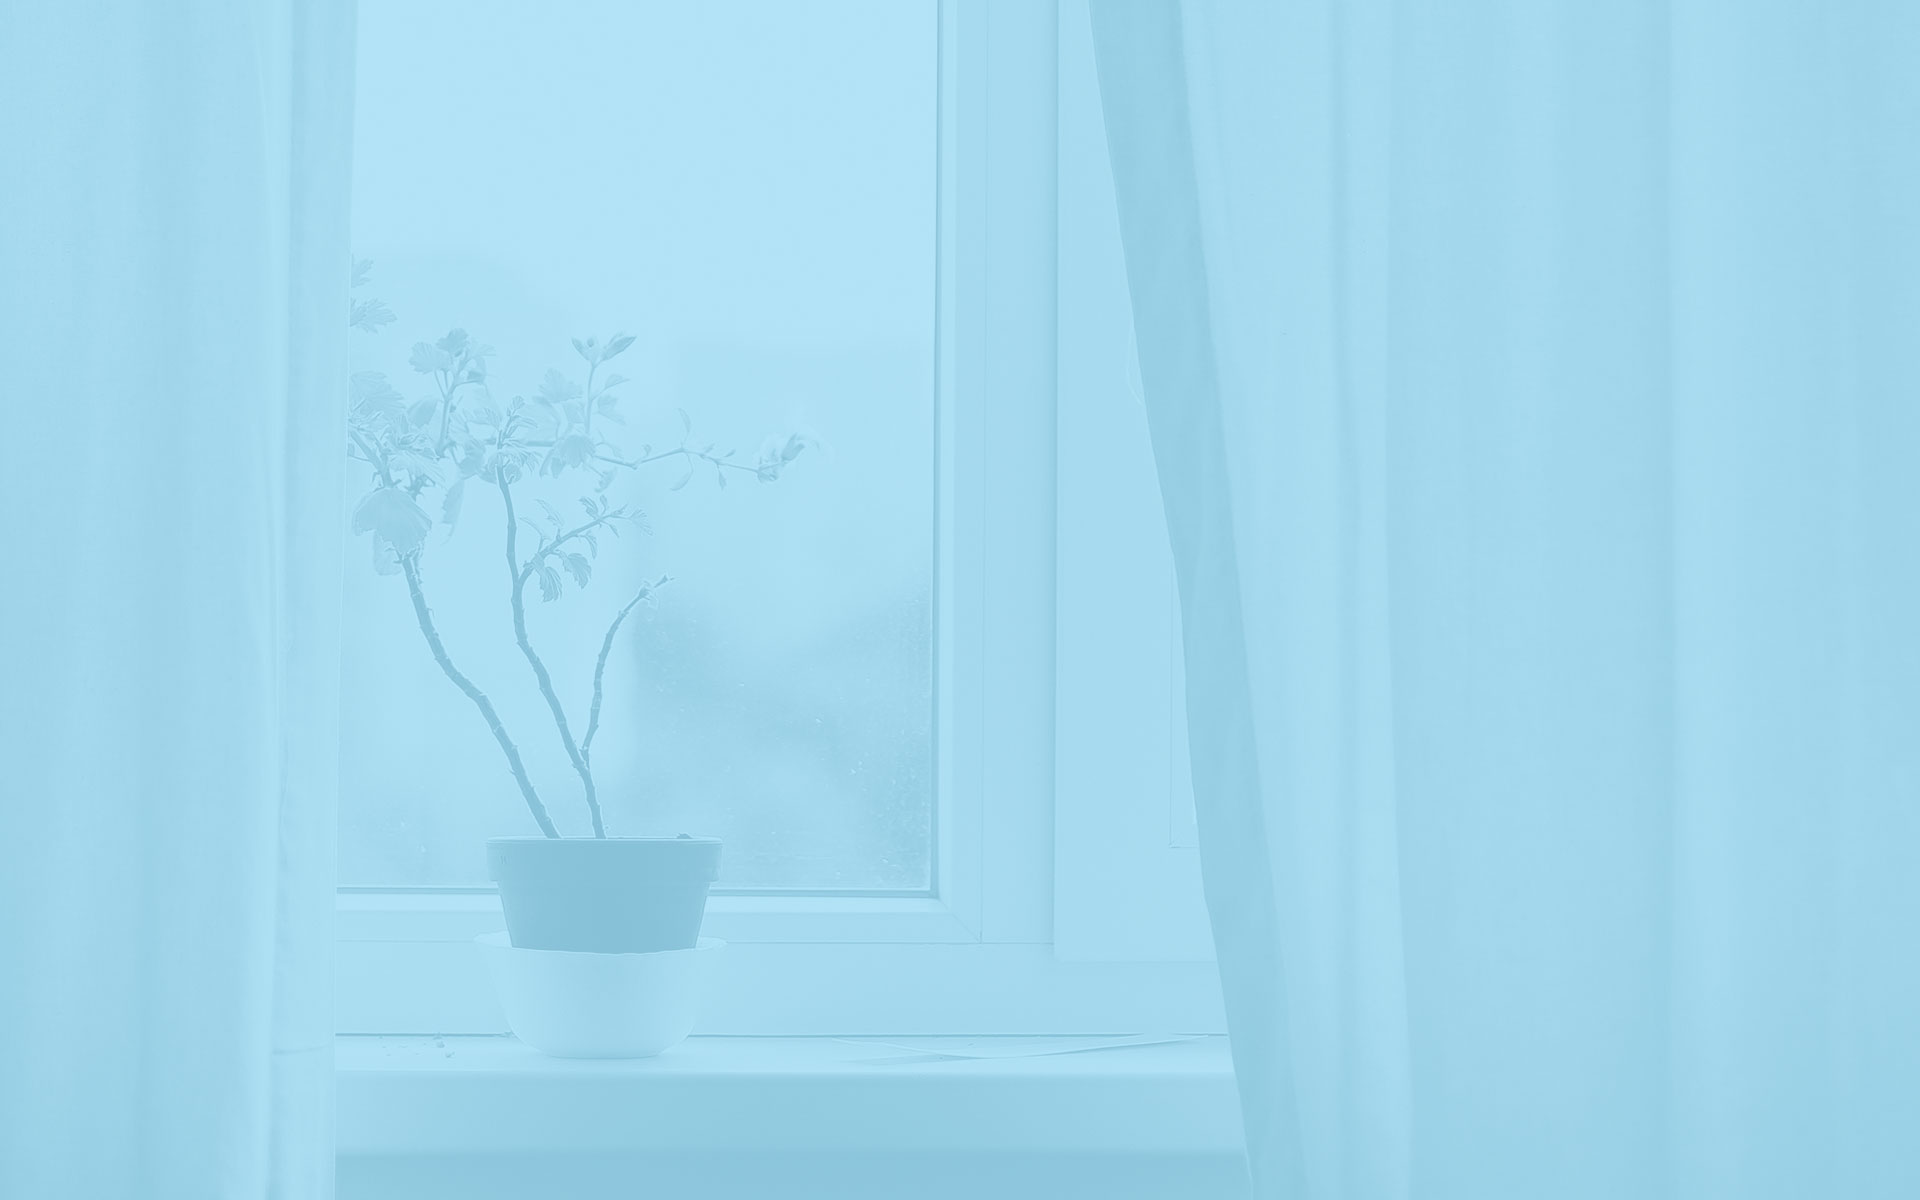 divorce-and-life-insurance-pensive-rainy-window-cover-img-lt